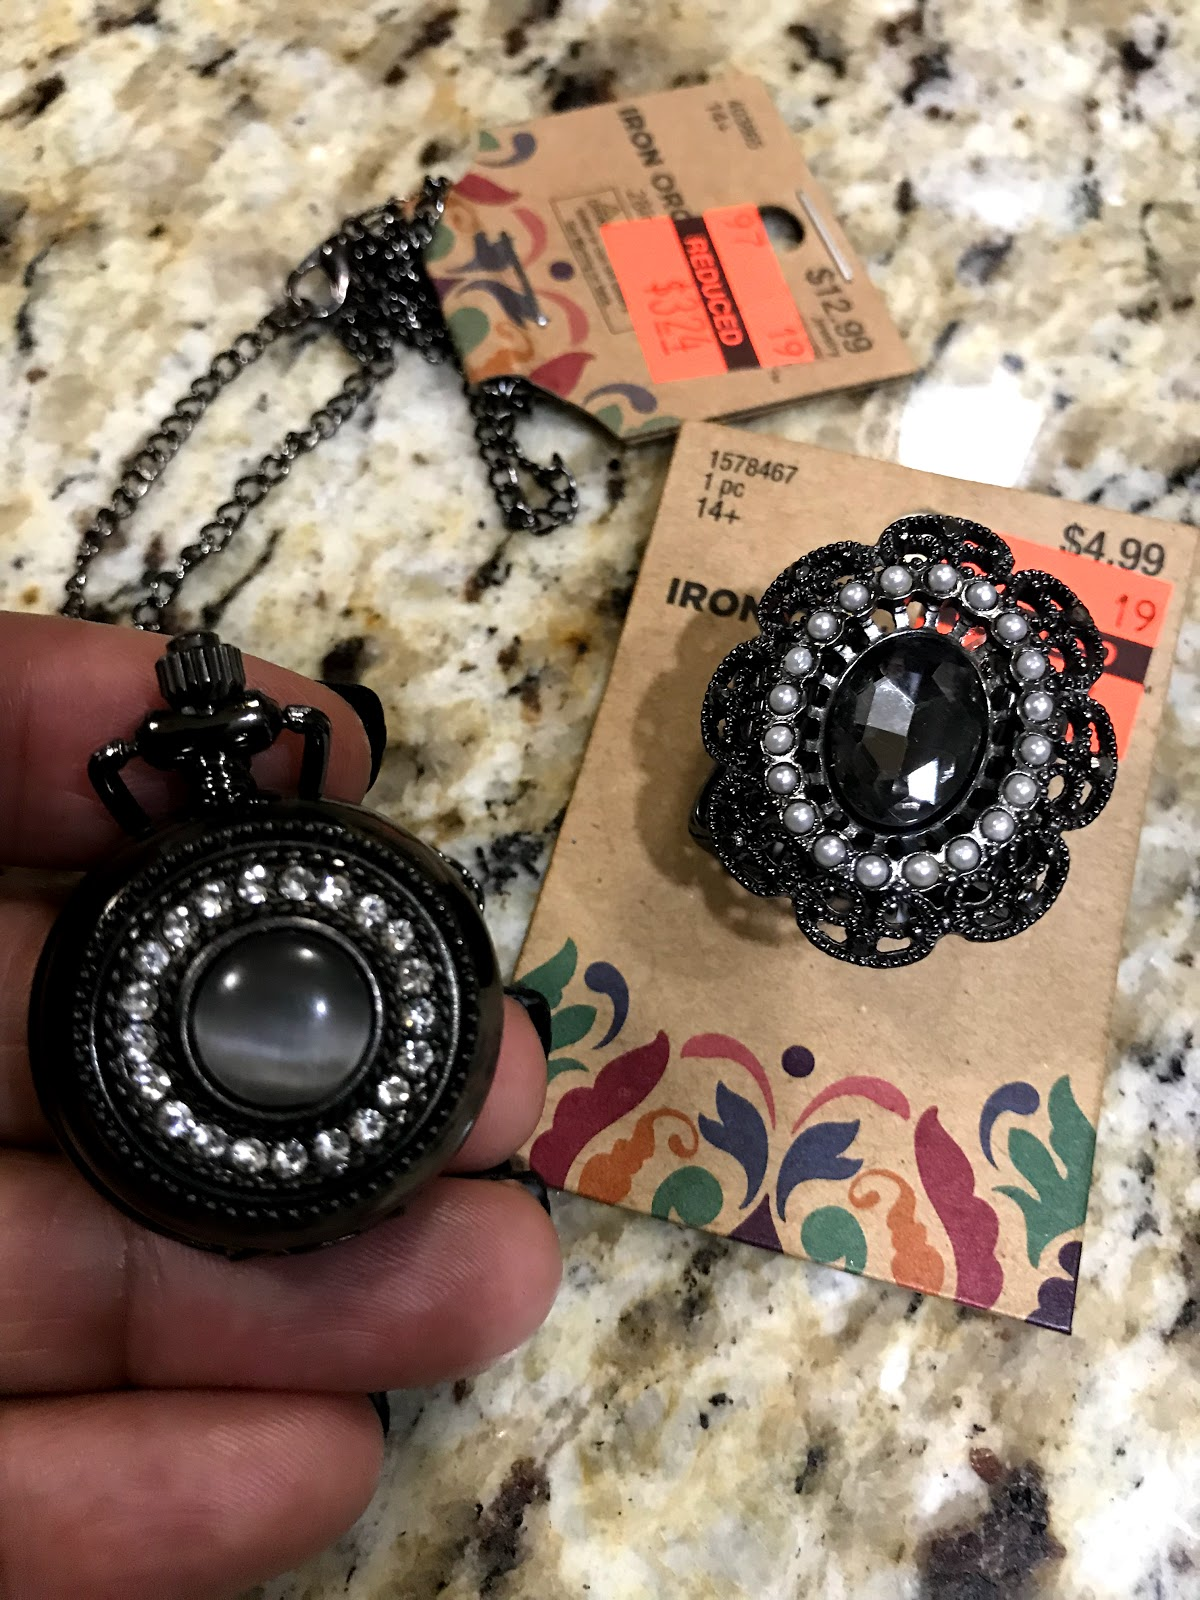 Image: Jewelry on sale at Hobby Lobby